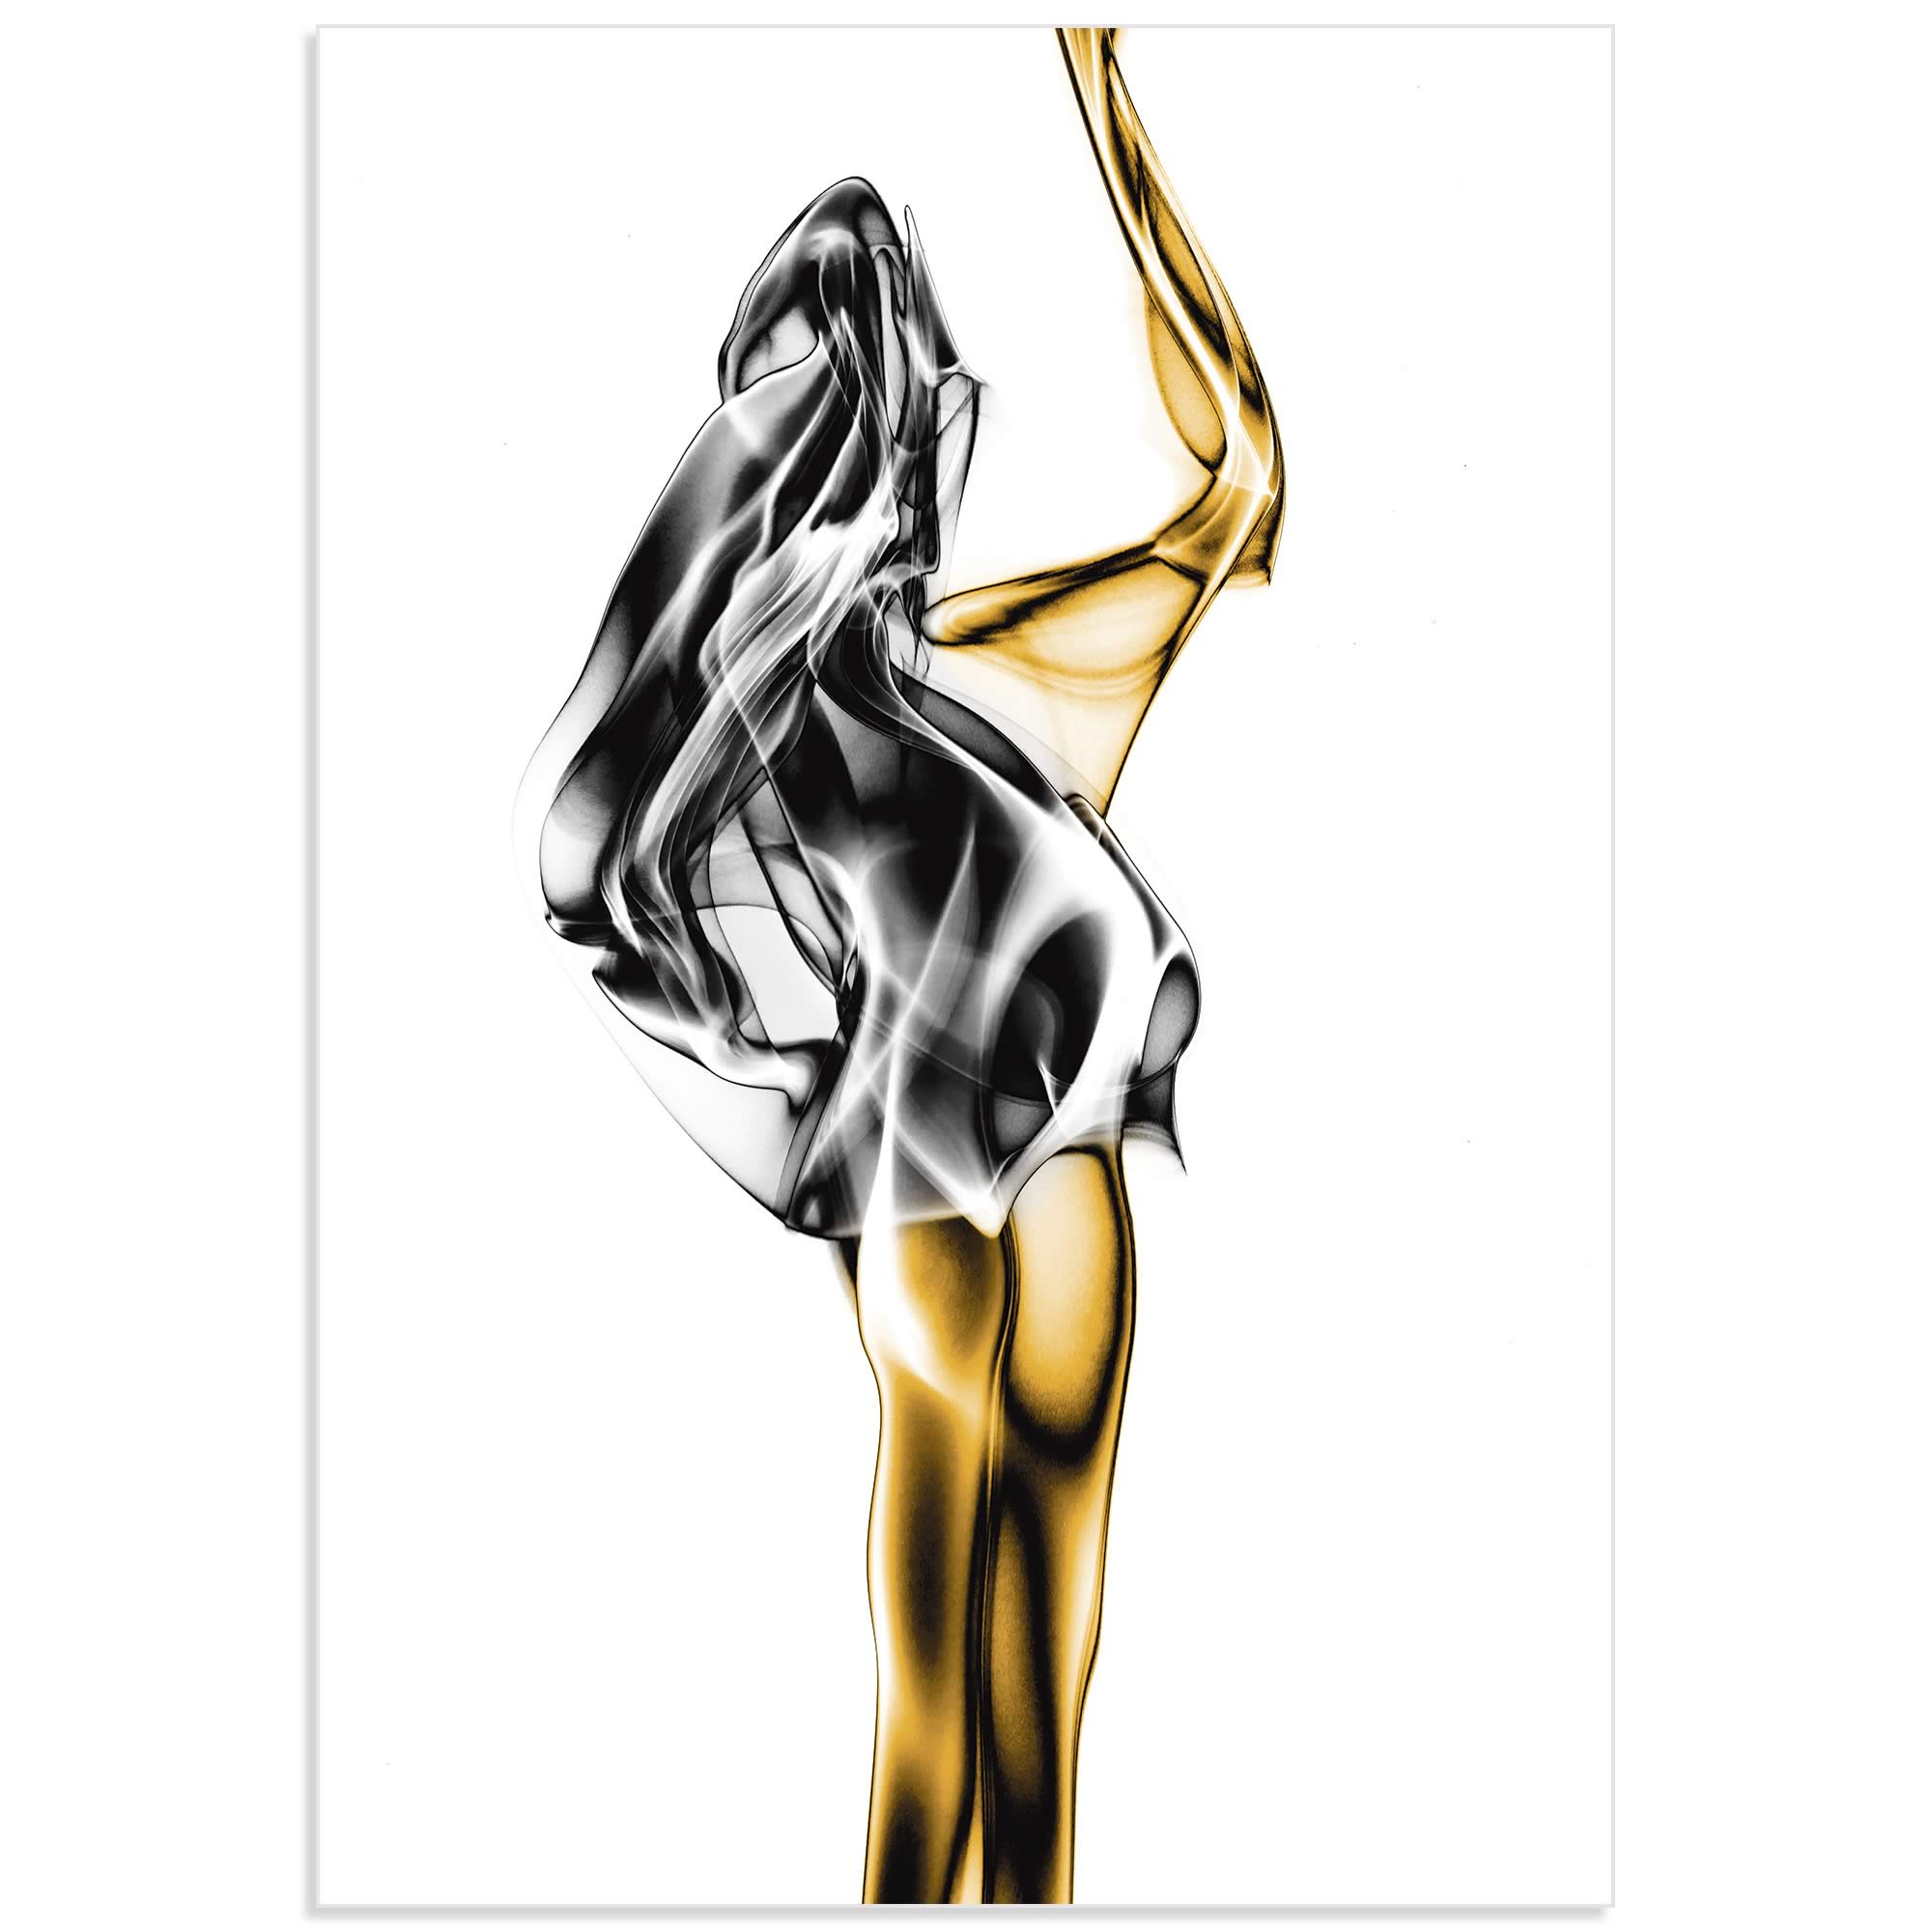 Naked Abstract by Roberto Marini - Figurative Art on Metal or Acrylic - Alternate View 2